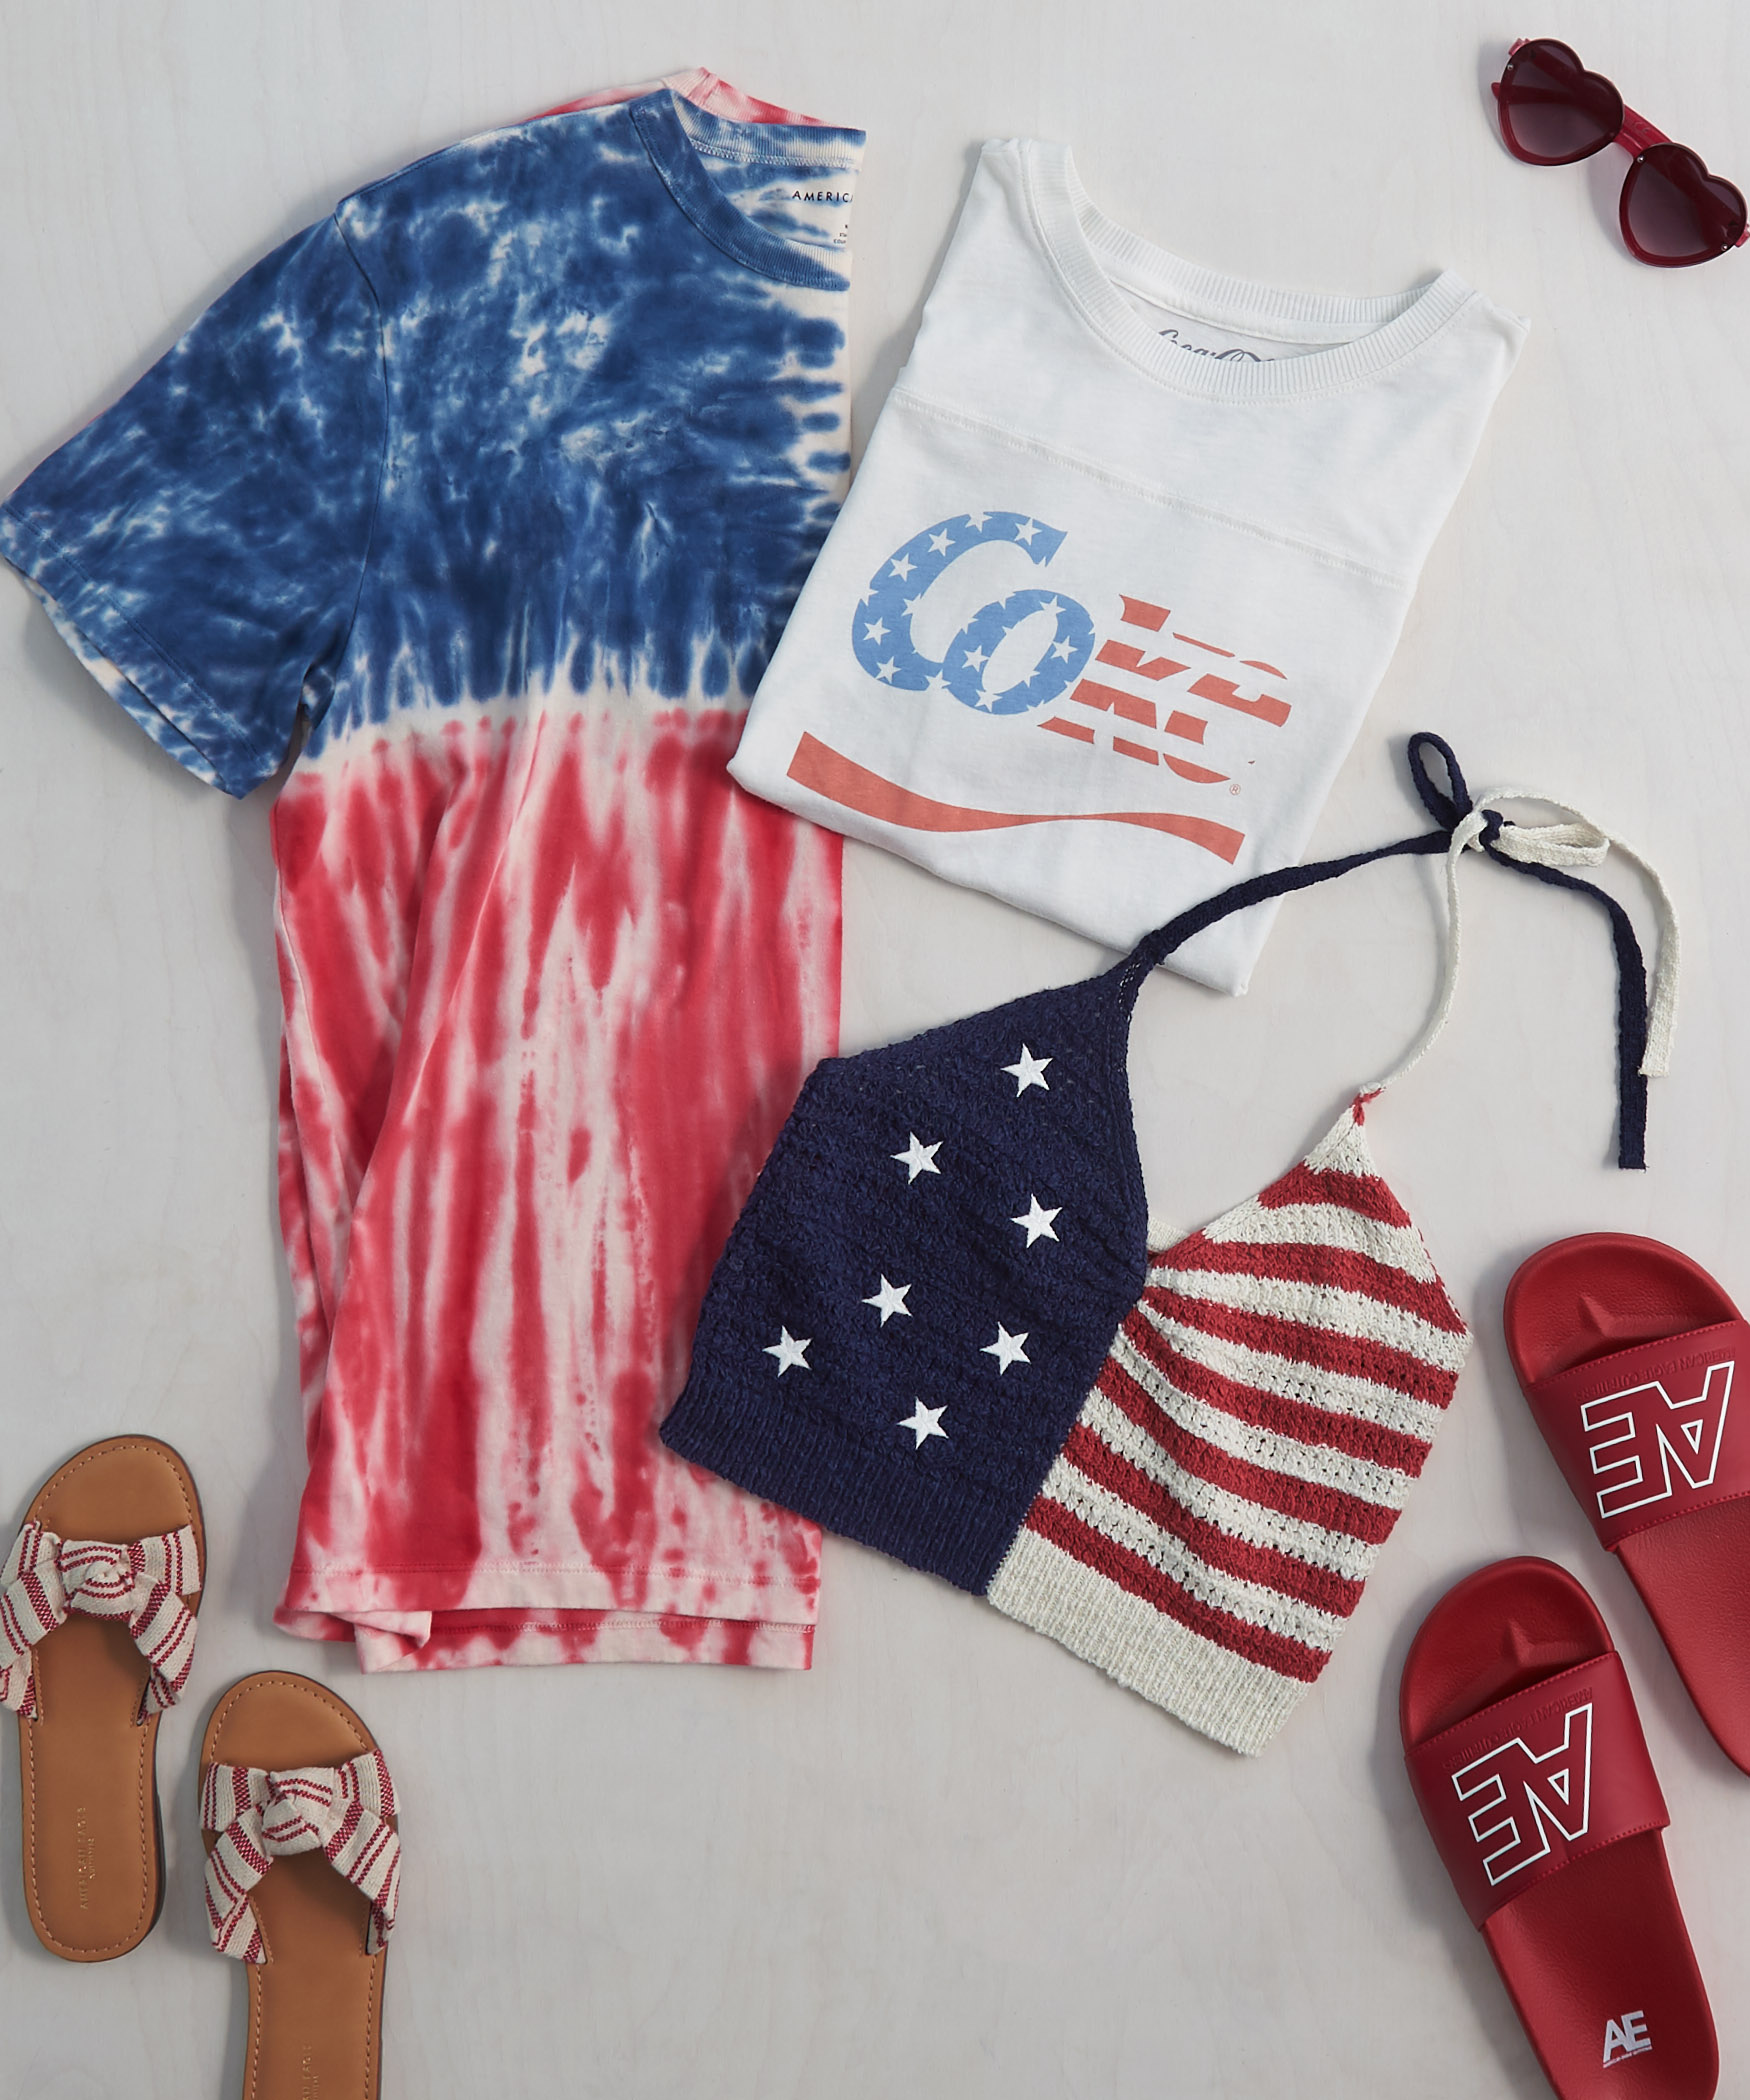 REd, White & Blue AE Women's Tops